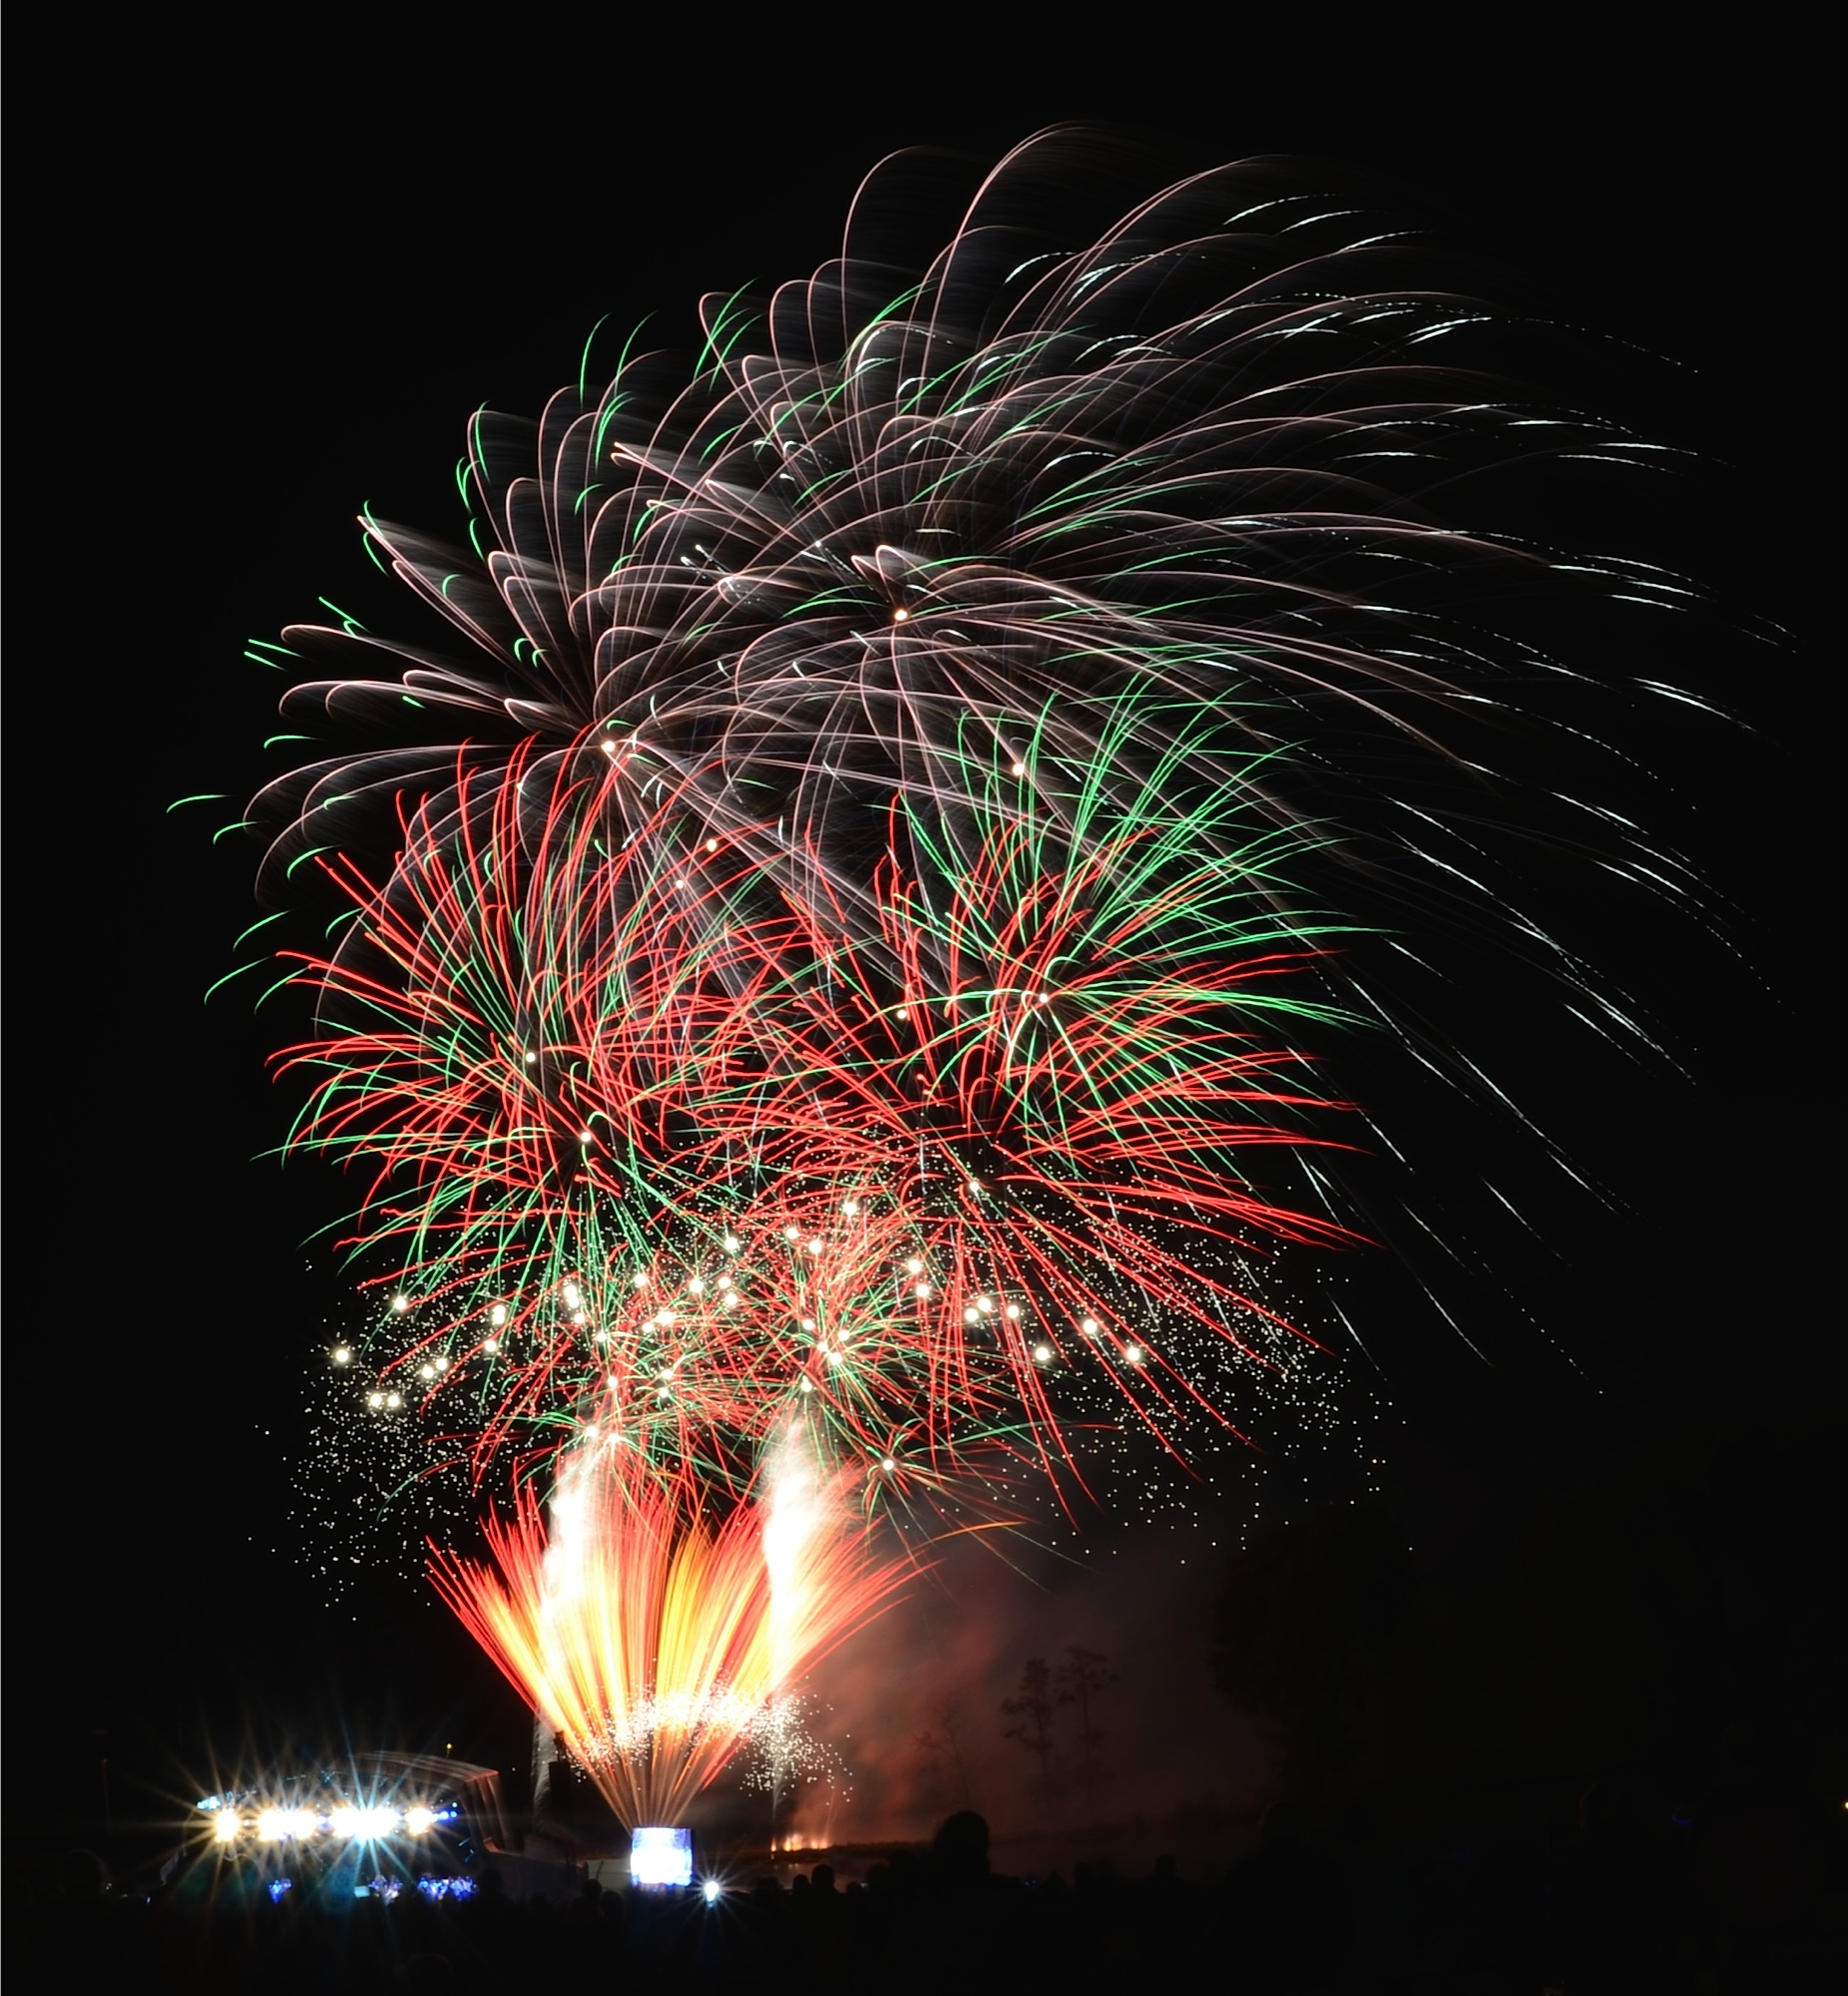 For Fireworks In Leeds Call 0113 344 8379